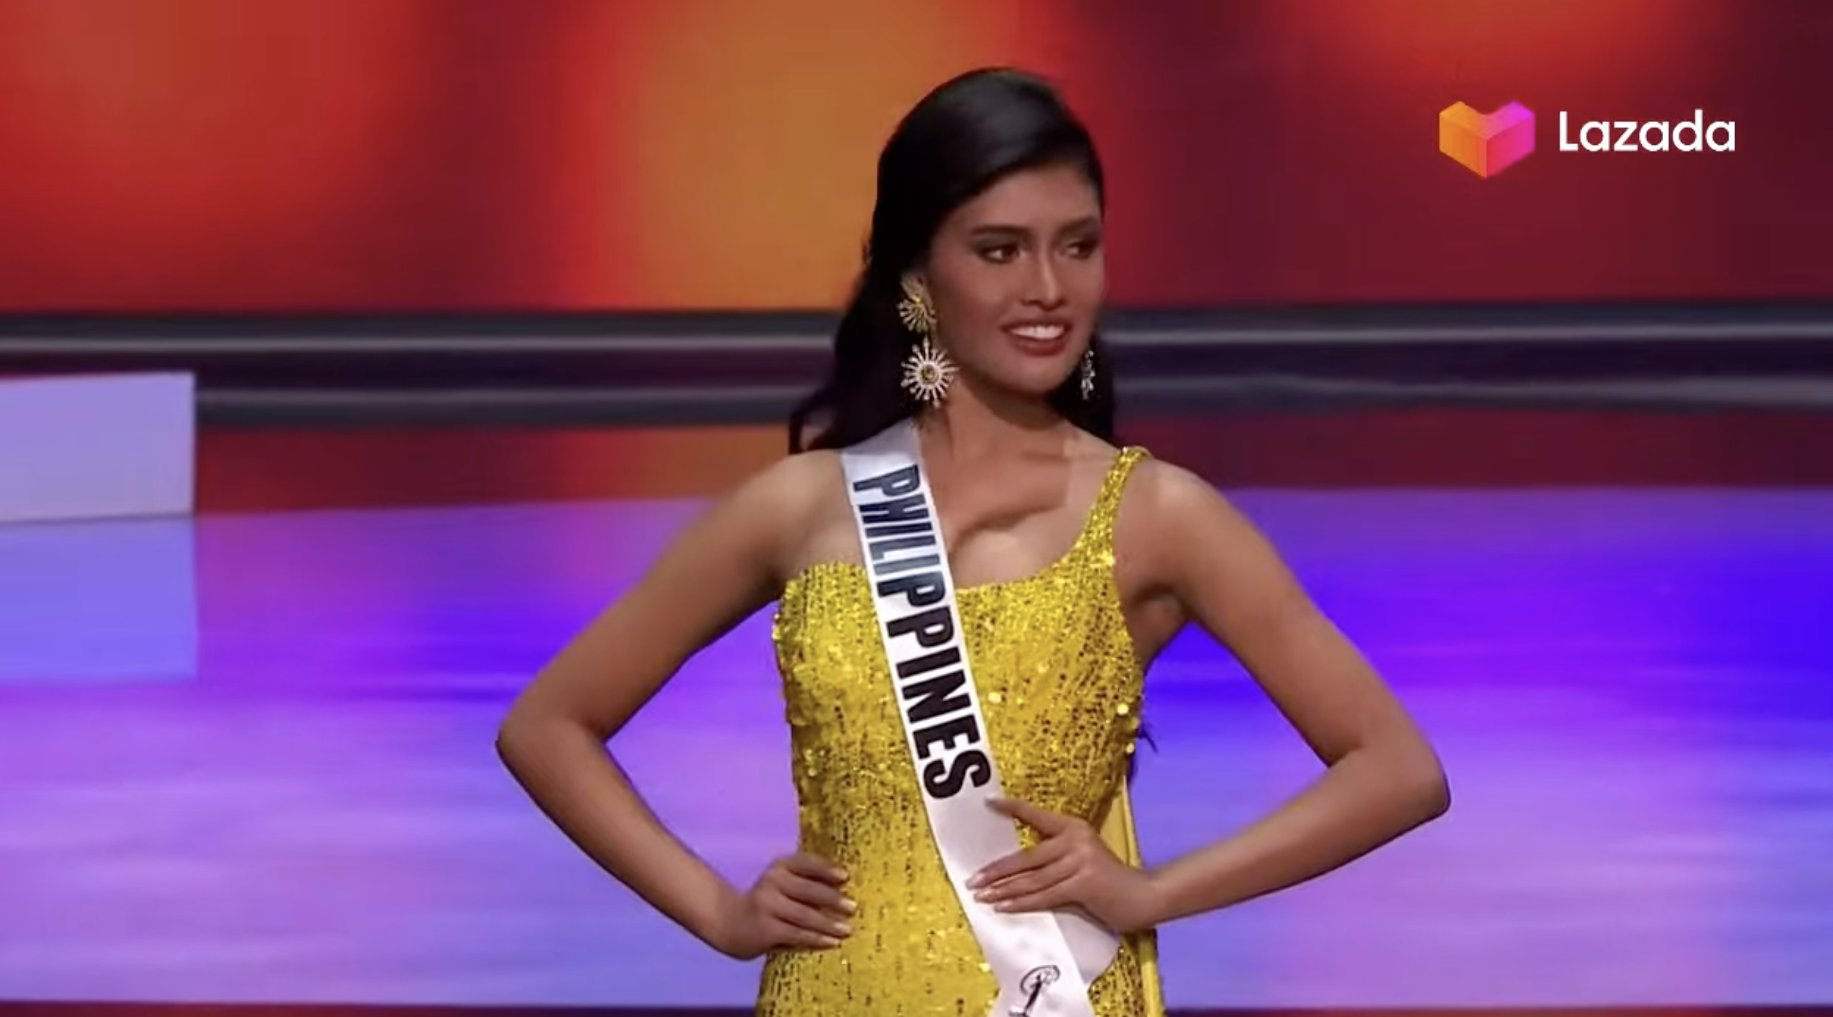 Rabiya Mateo preliminaries: evening gown competition